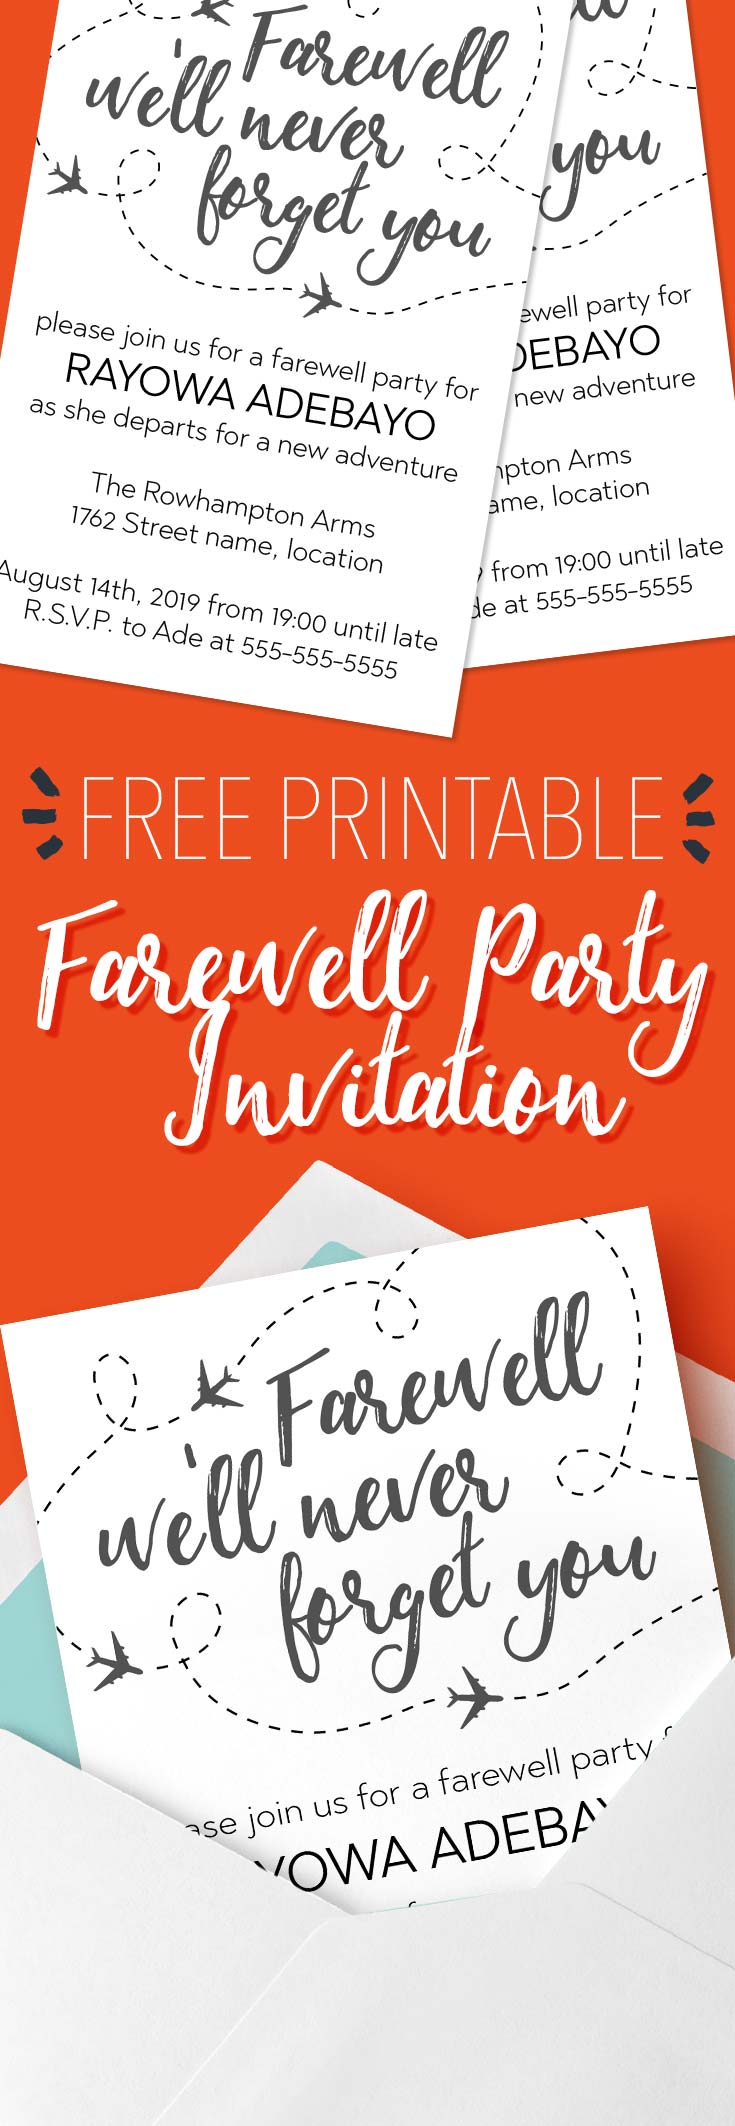 We'll Never Forget You Farewell Invitation